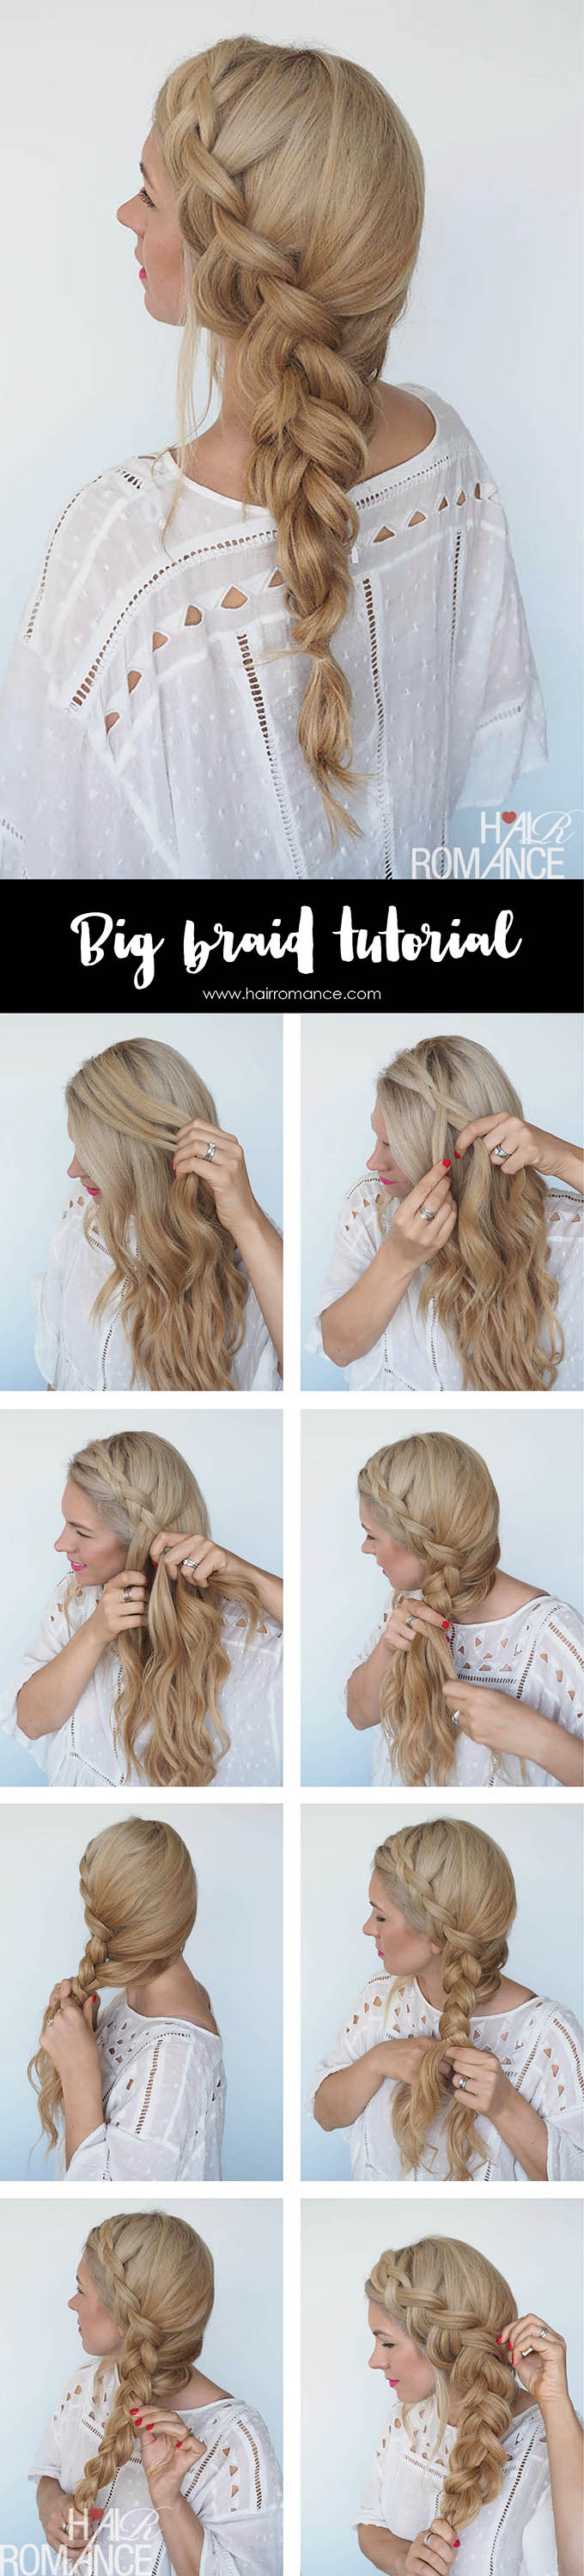 How To Style A Big Side Braid Instant Mermaid Hair Hair Romance